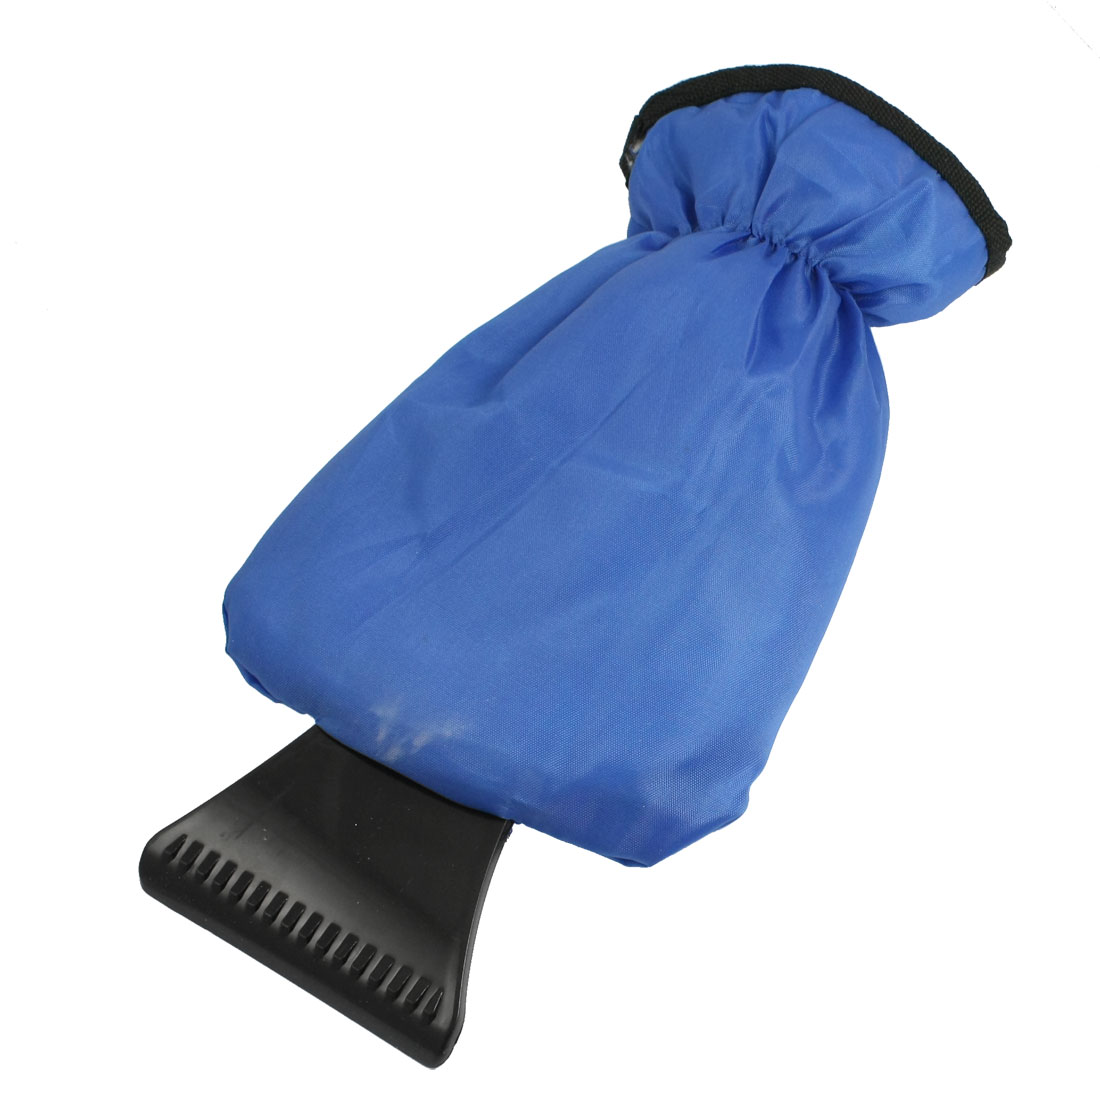 Plastic Ice Snow Scraper Hand Protectr Plush Lining Fabric Glove Blue